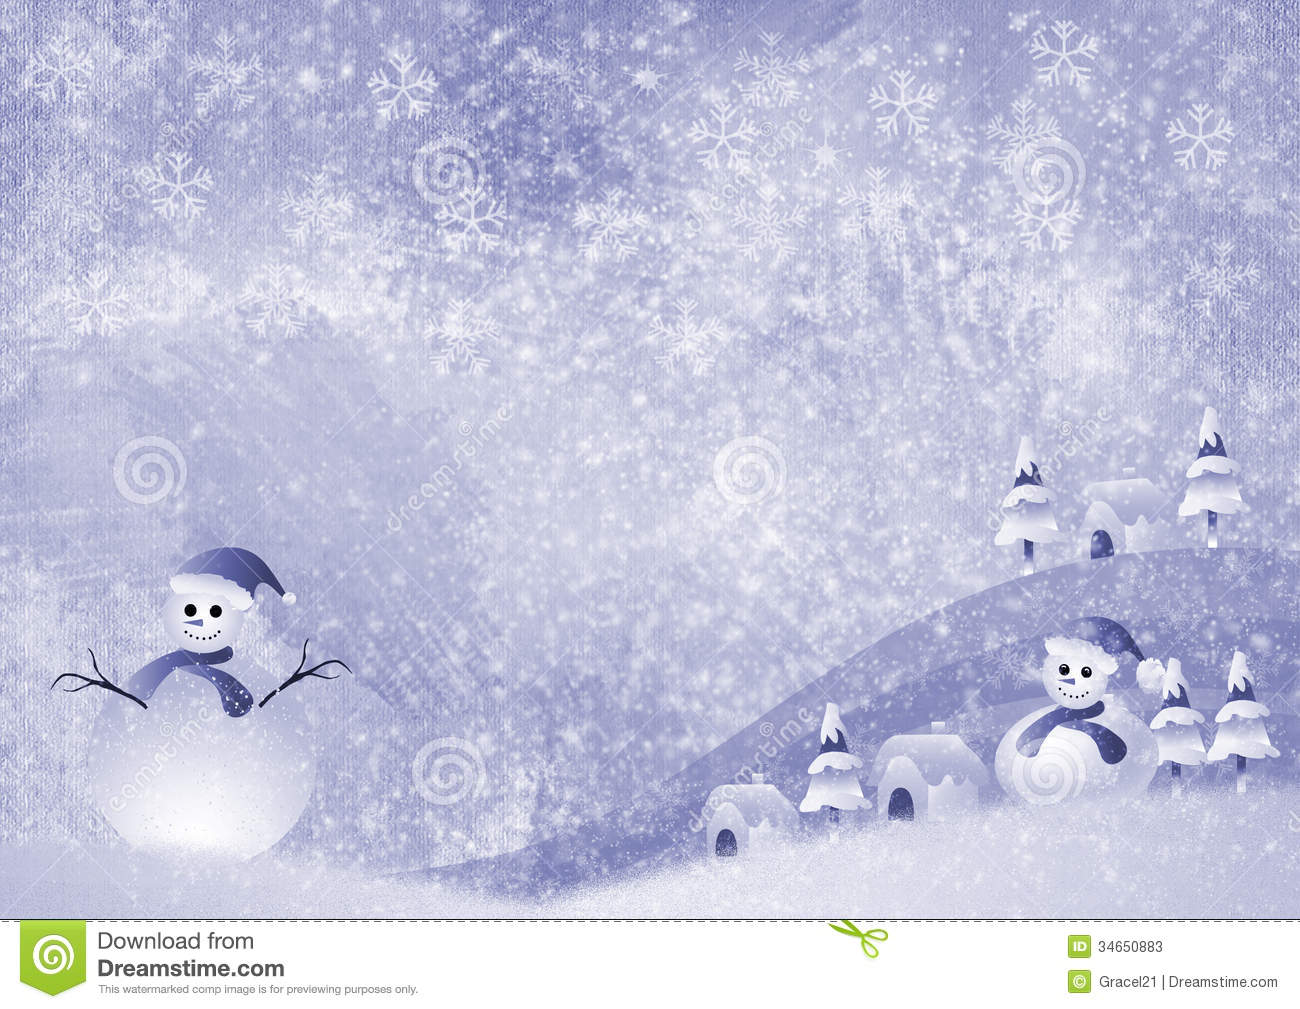 Christmas background with snowman. snowflakes and christmas tree.